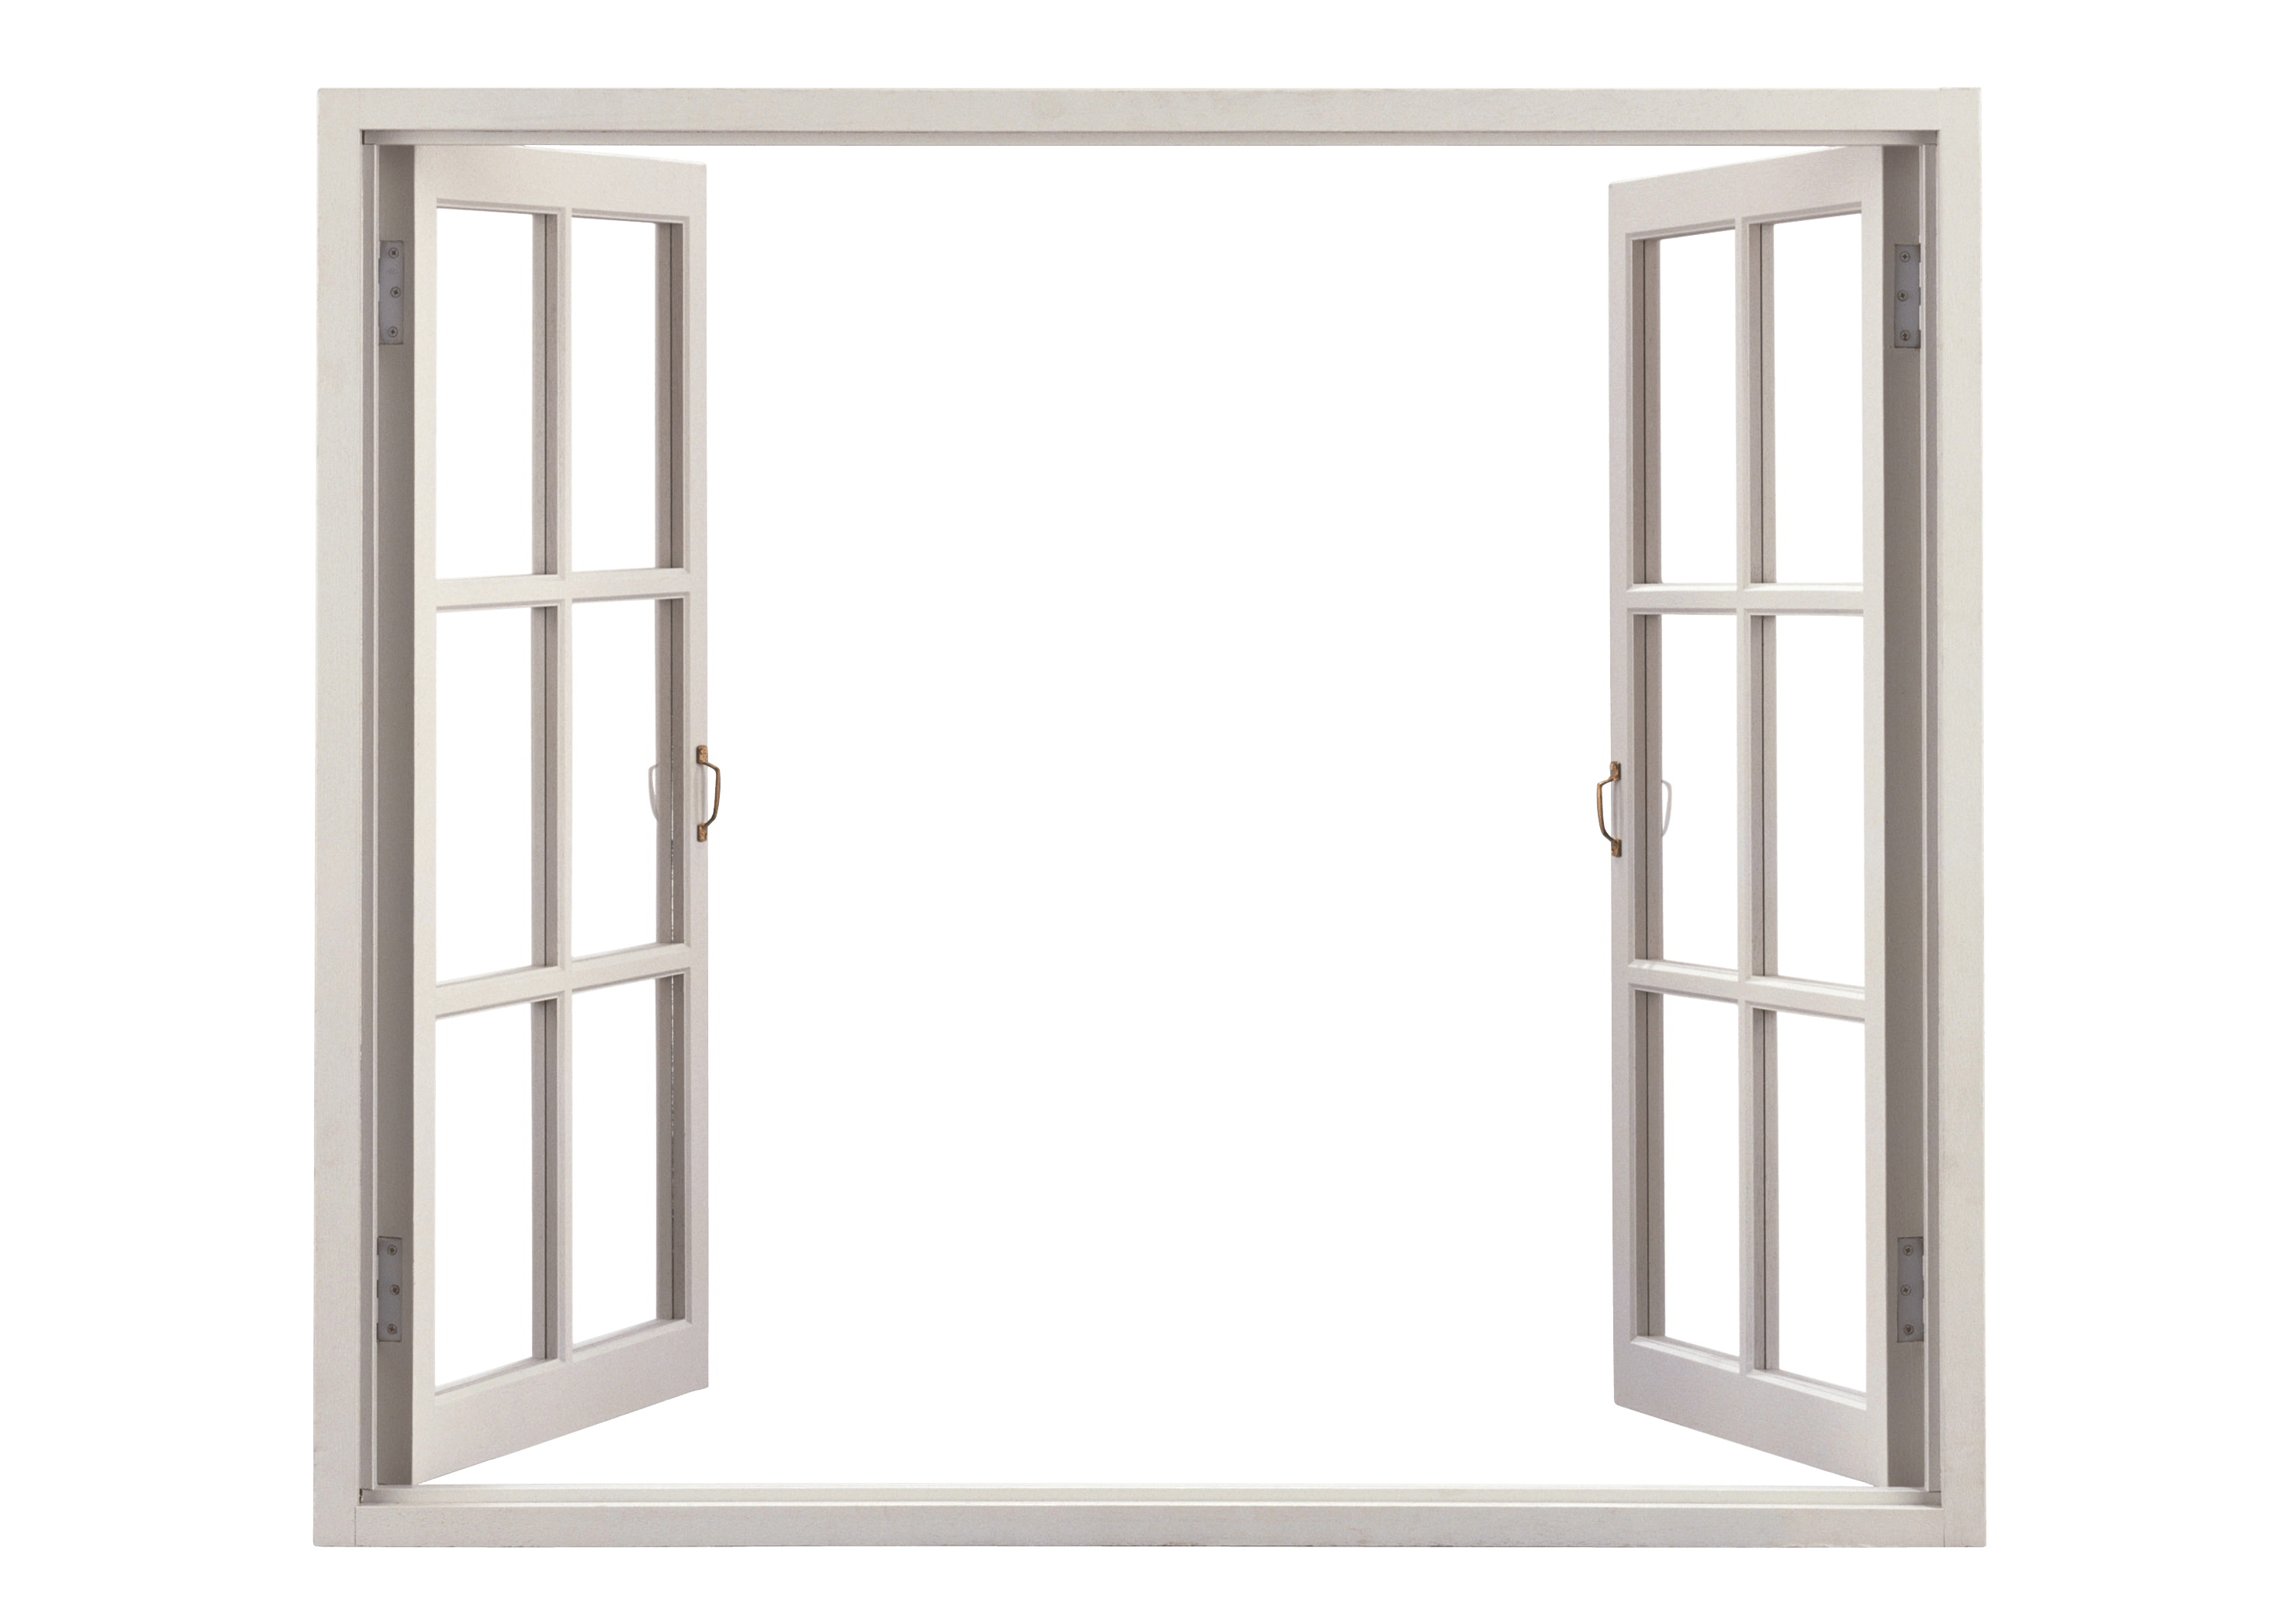 Open window transparent png stickpng for Room with no doors or windows